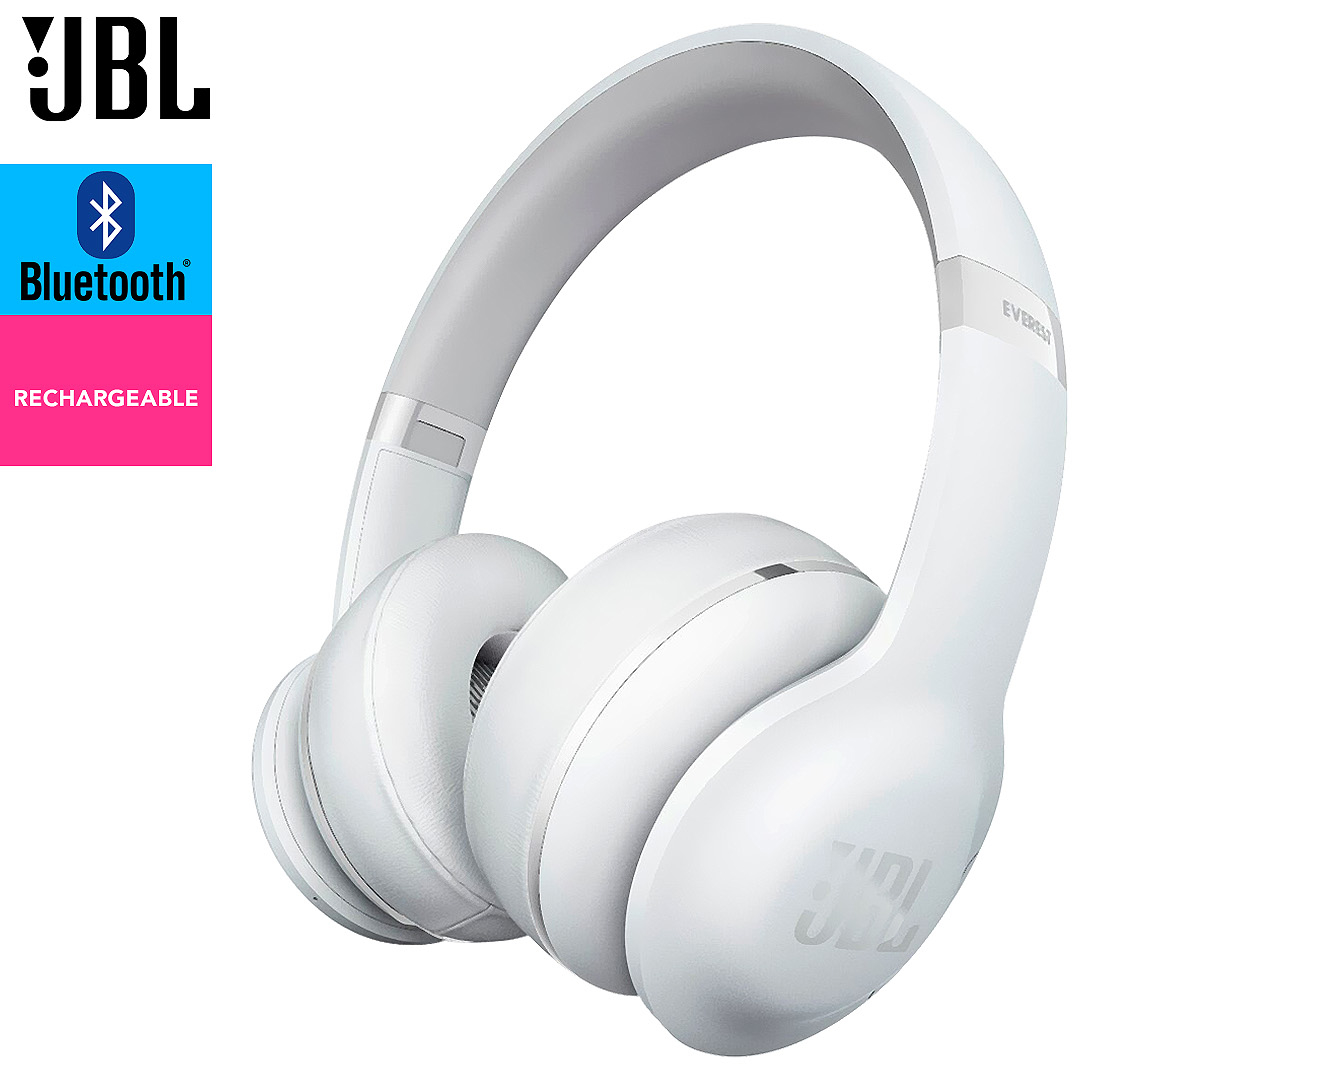 Earphones wireless bluetooth radio - bluetooth earphones jbl wireless